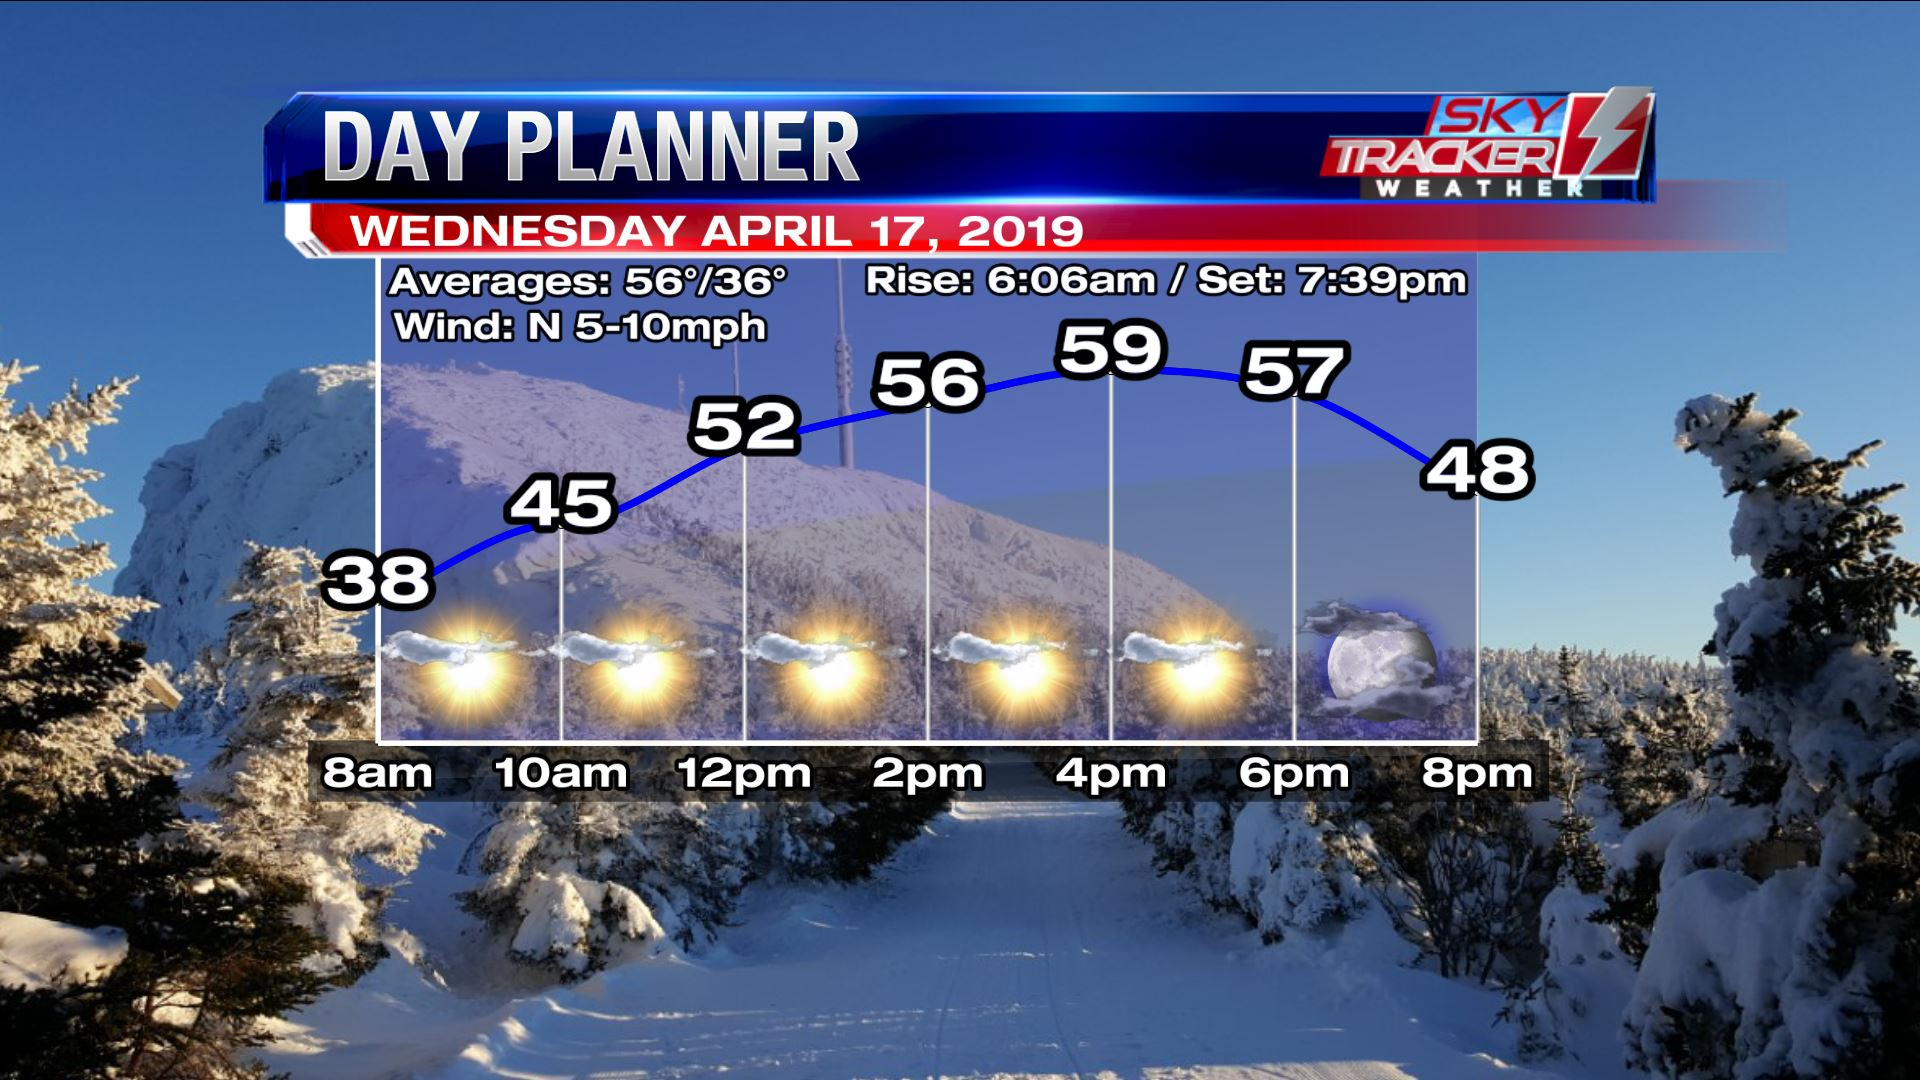 Planner for Wednesday April 17 2019